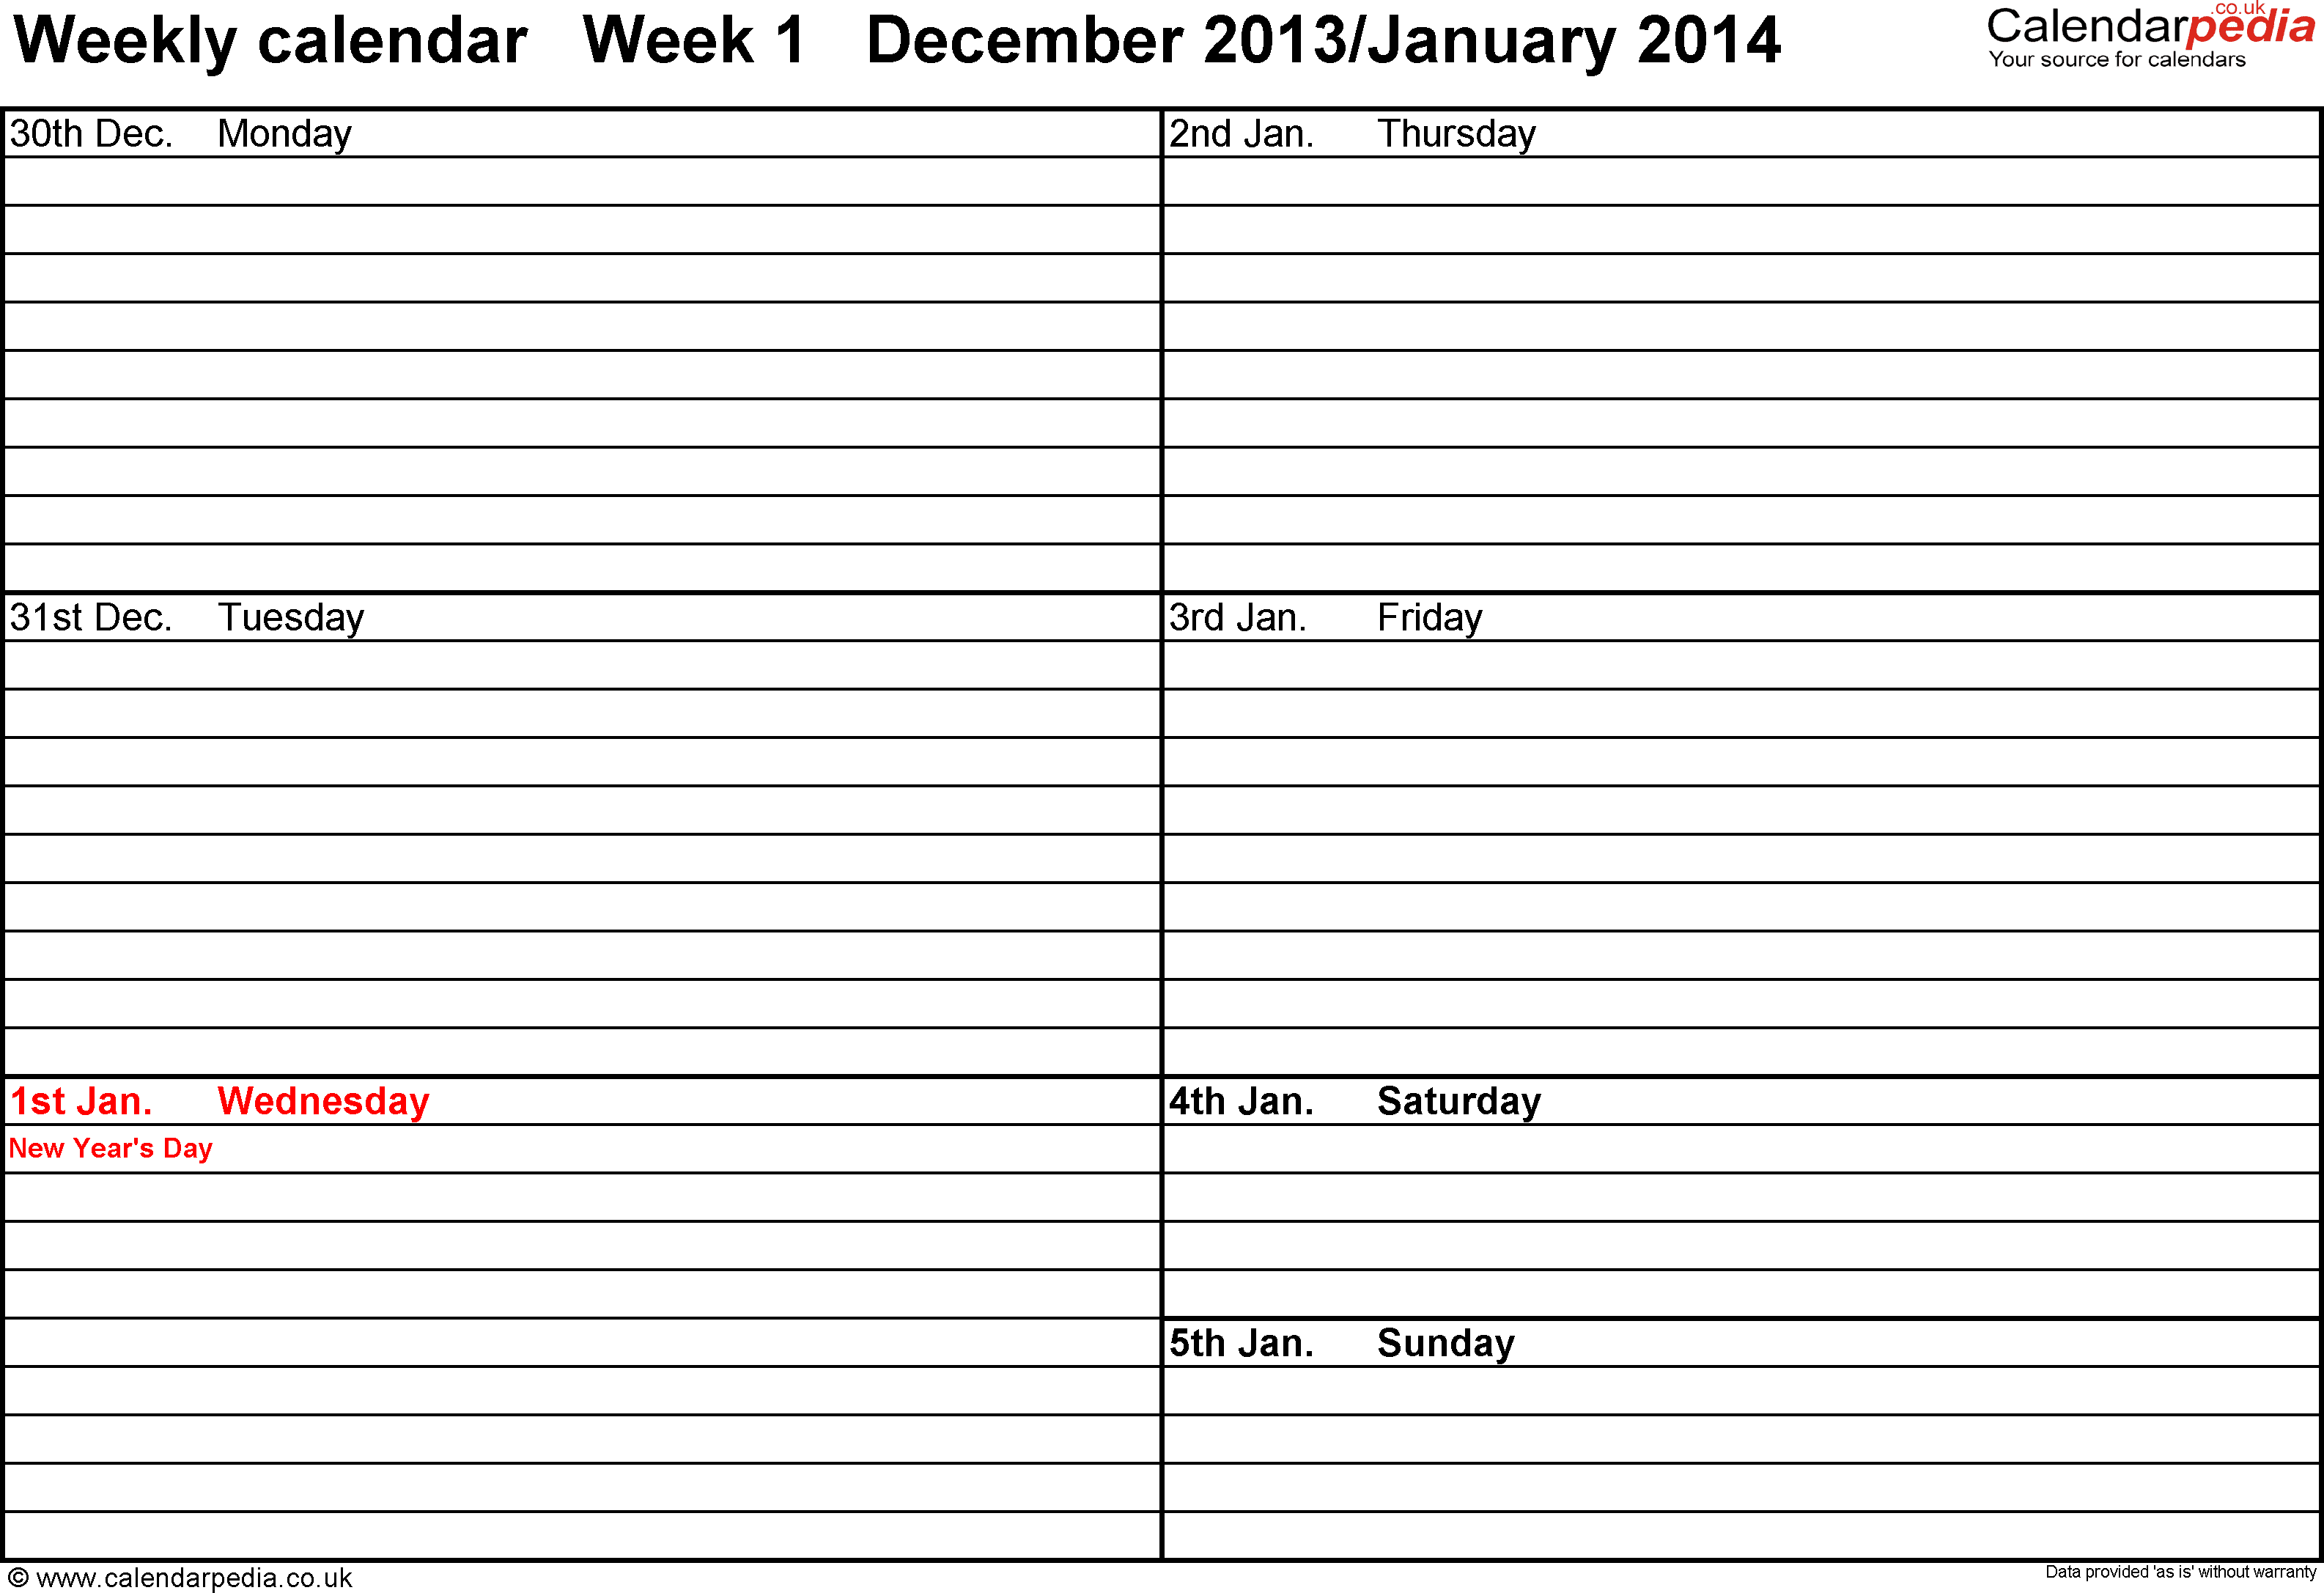 Weekly calendar 2014 UK free printable templates for Excel